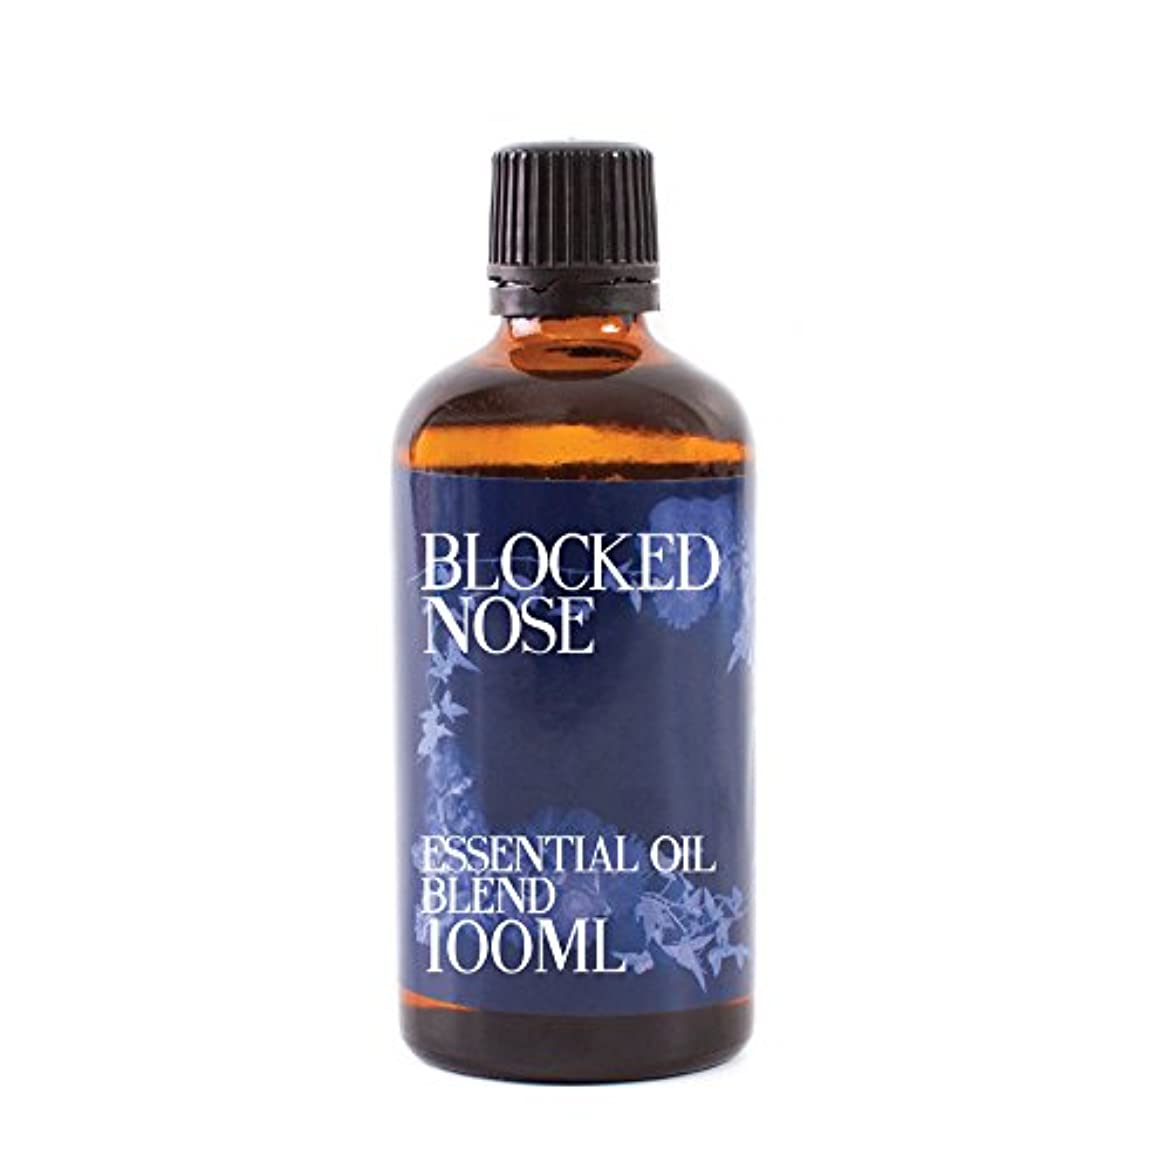 持続的パノラマかすかなMystic Moments | Blocked Nose Essential Oil Blend - 100ml - 100% Pure